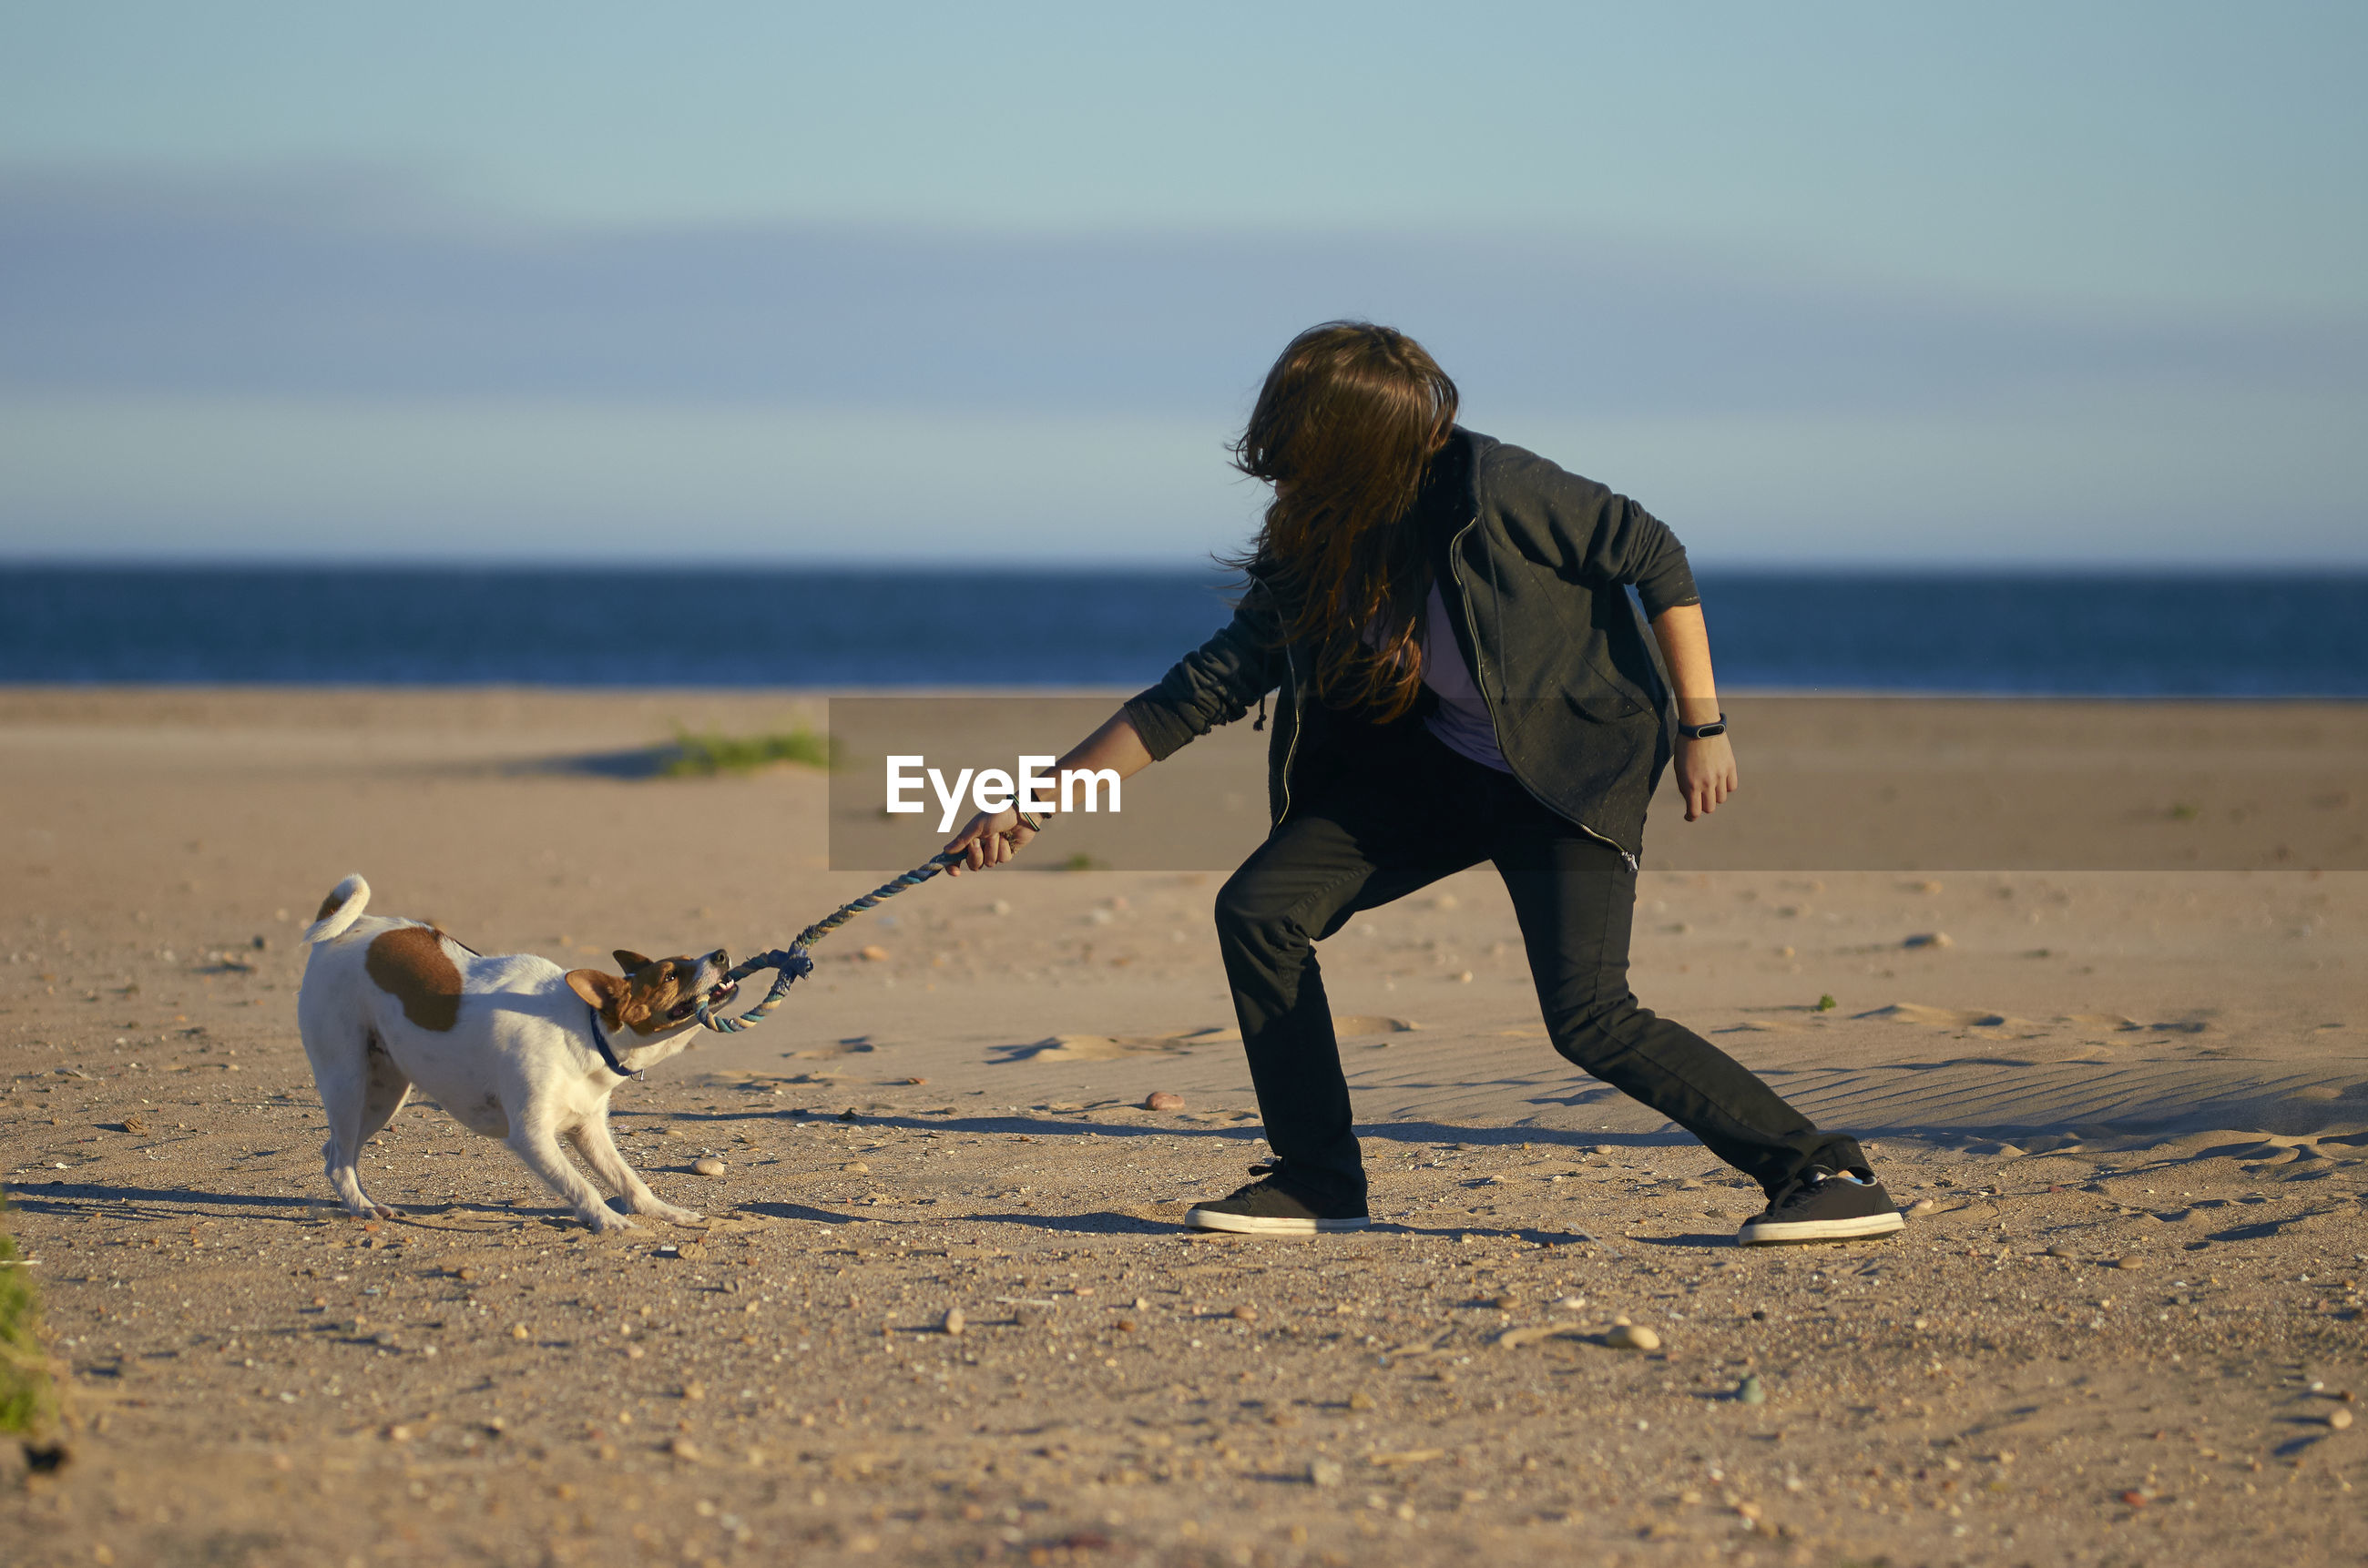 Woman playing with dog at beach against sky